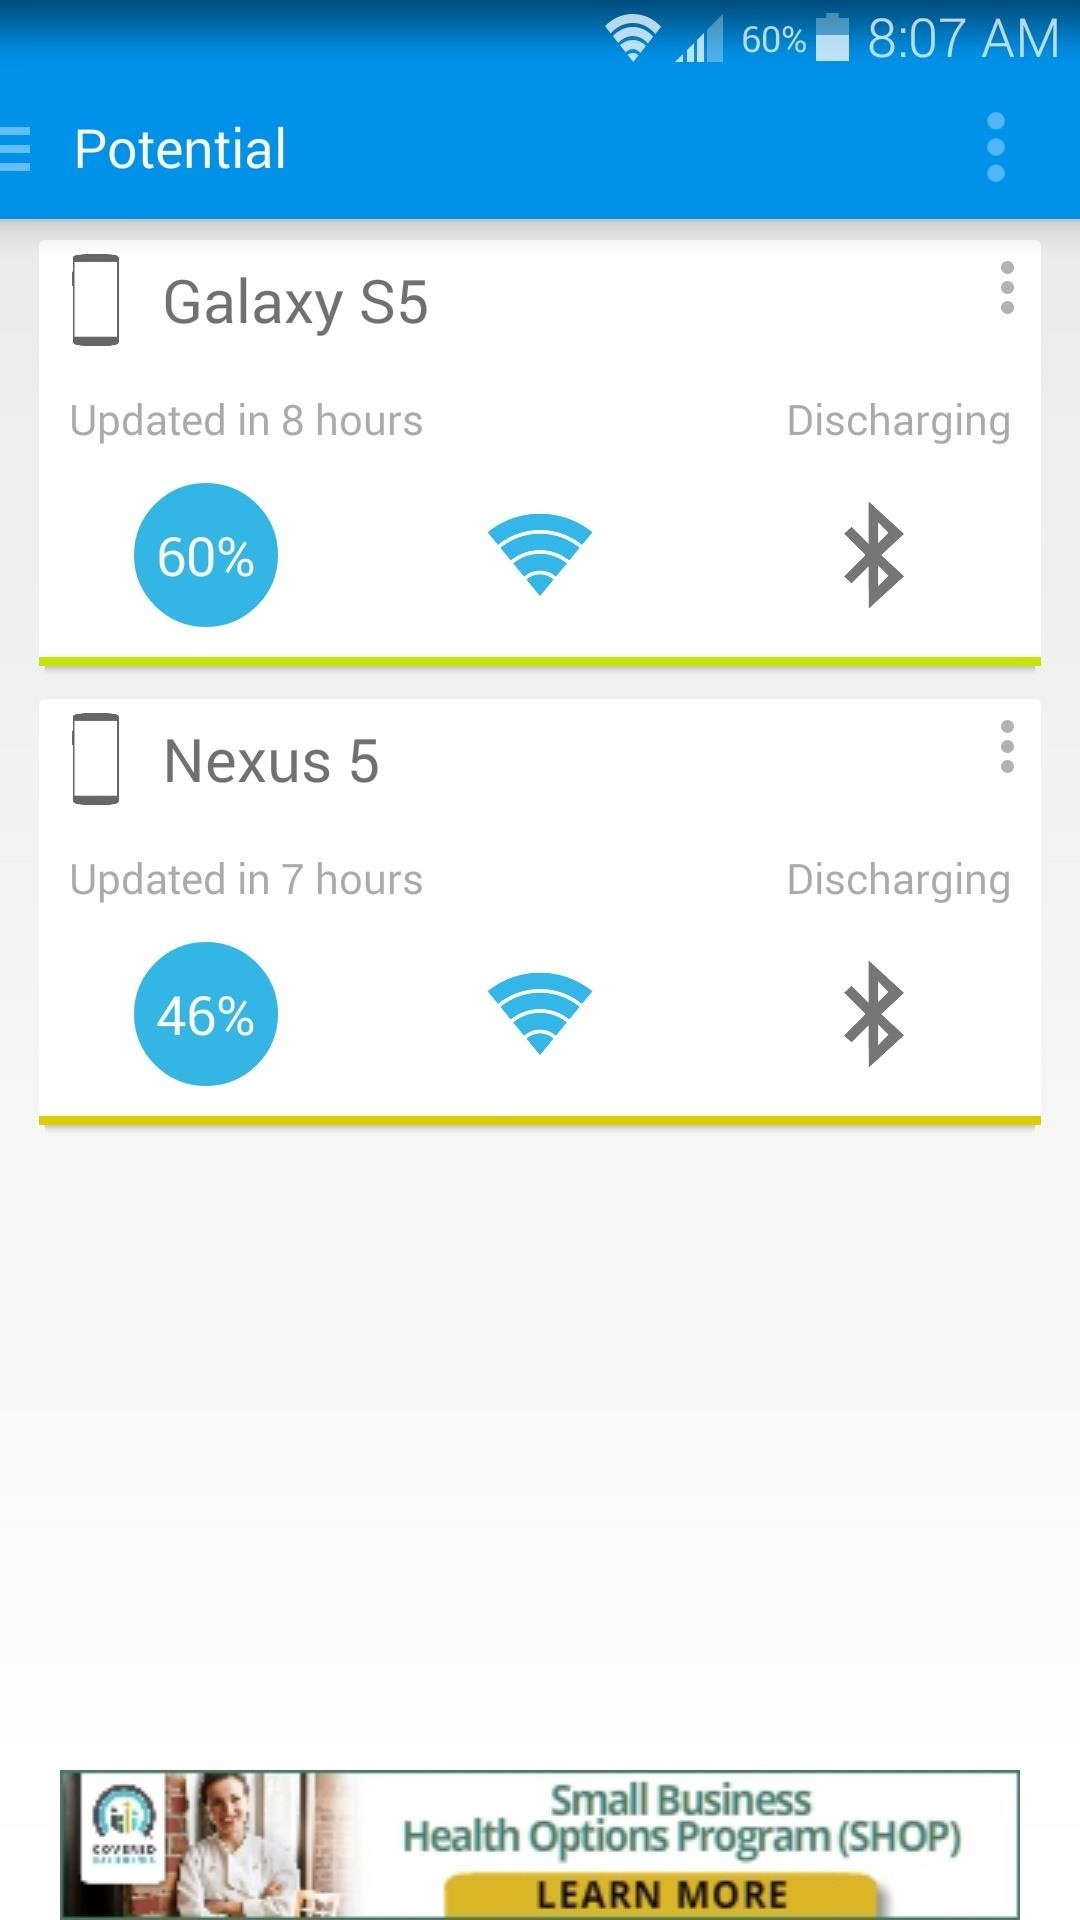 How to View Battery Levels for All of Your Devices in One App